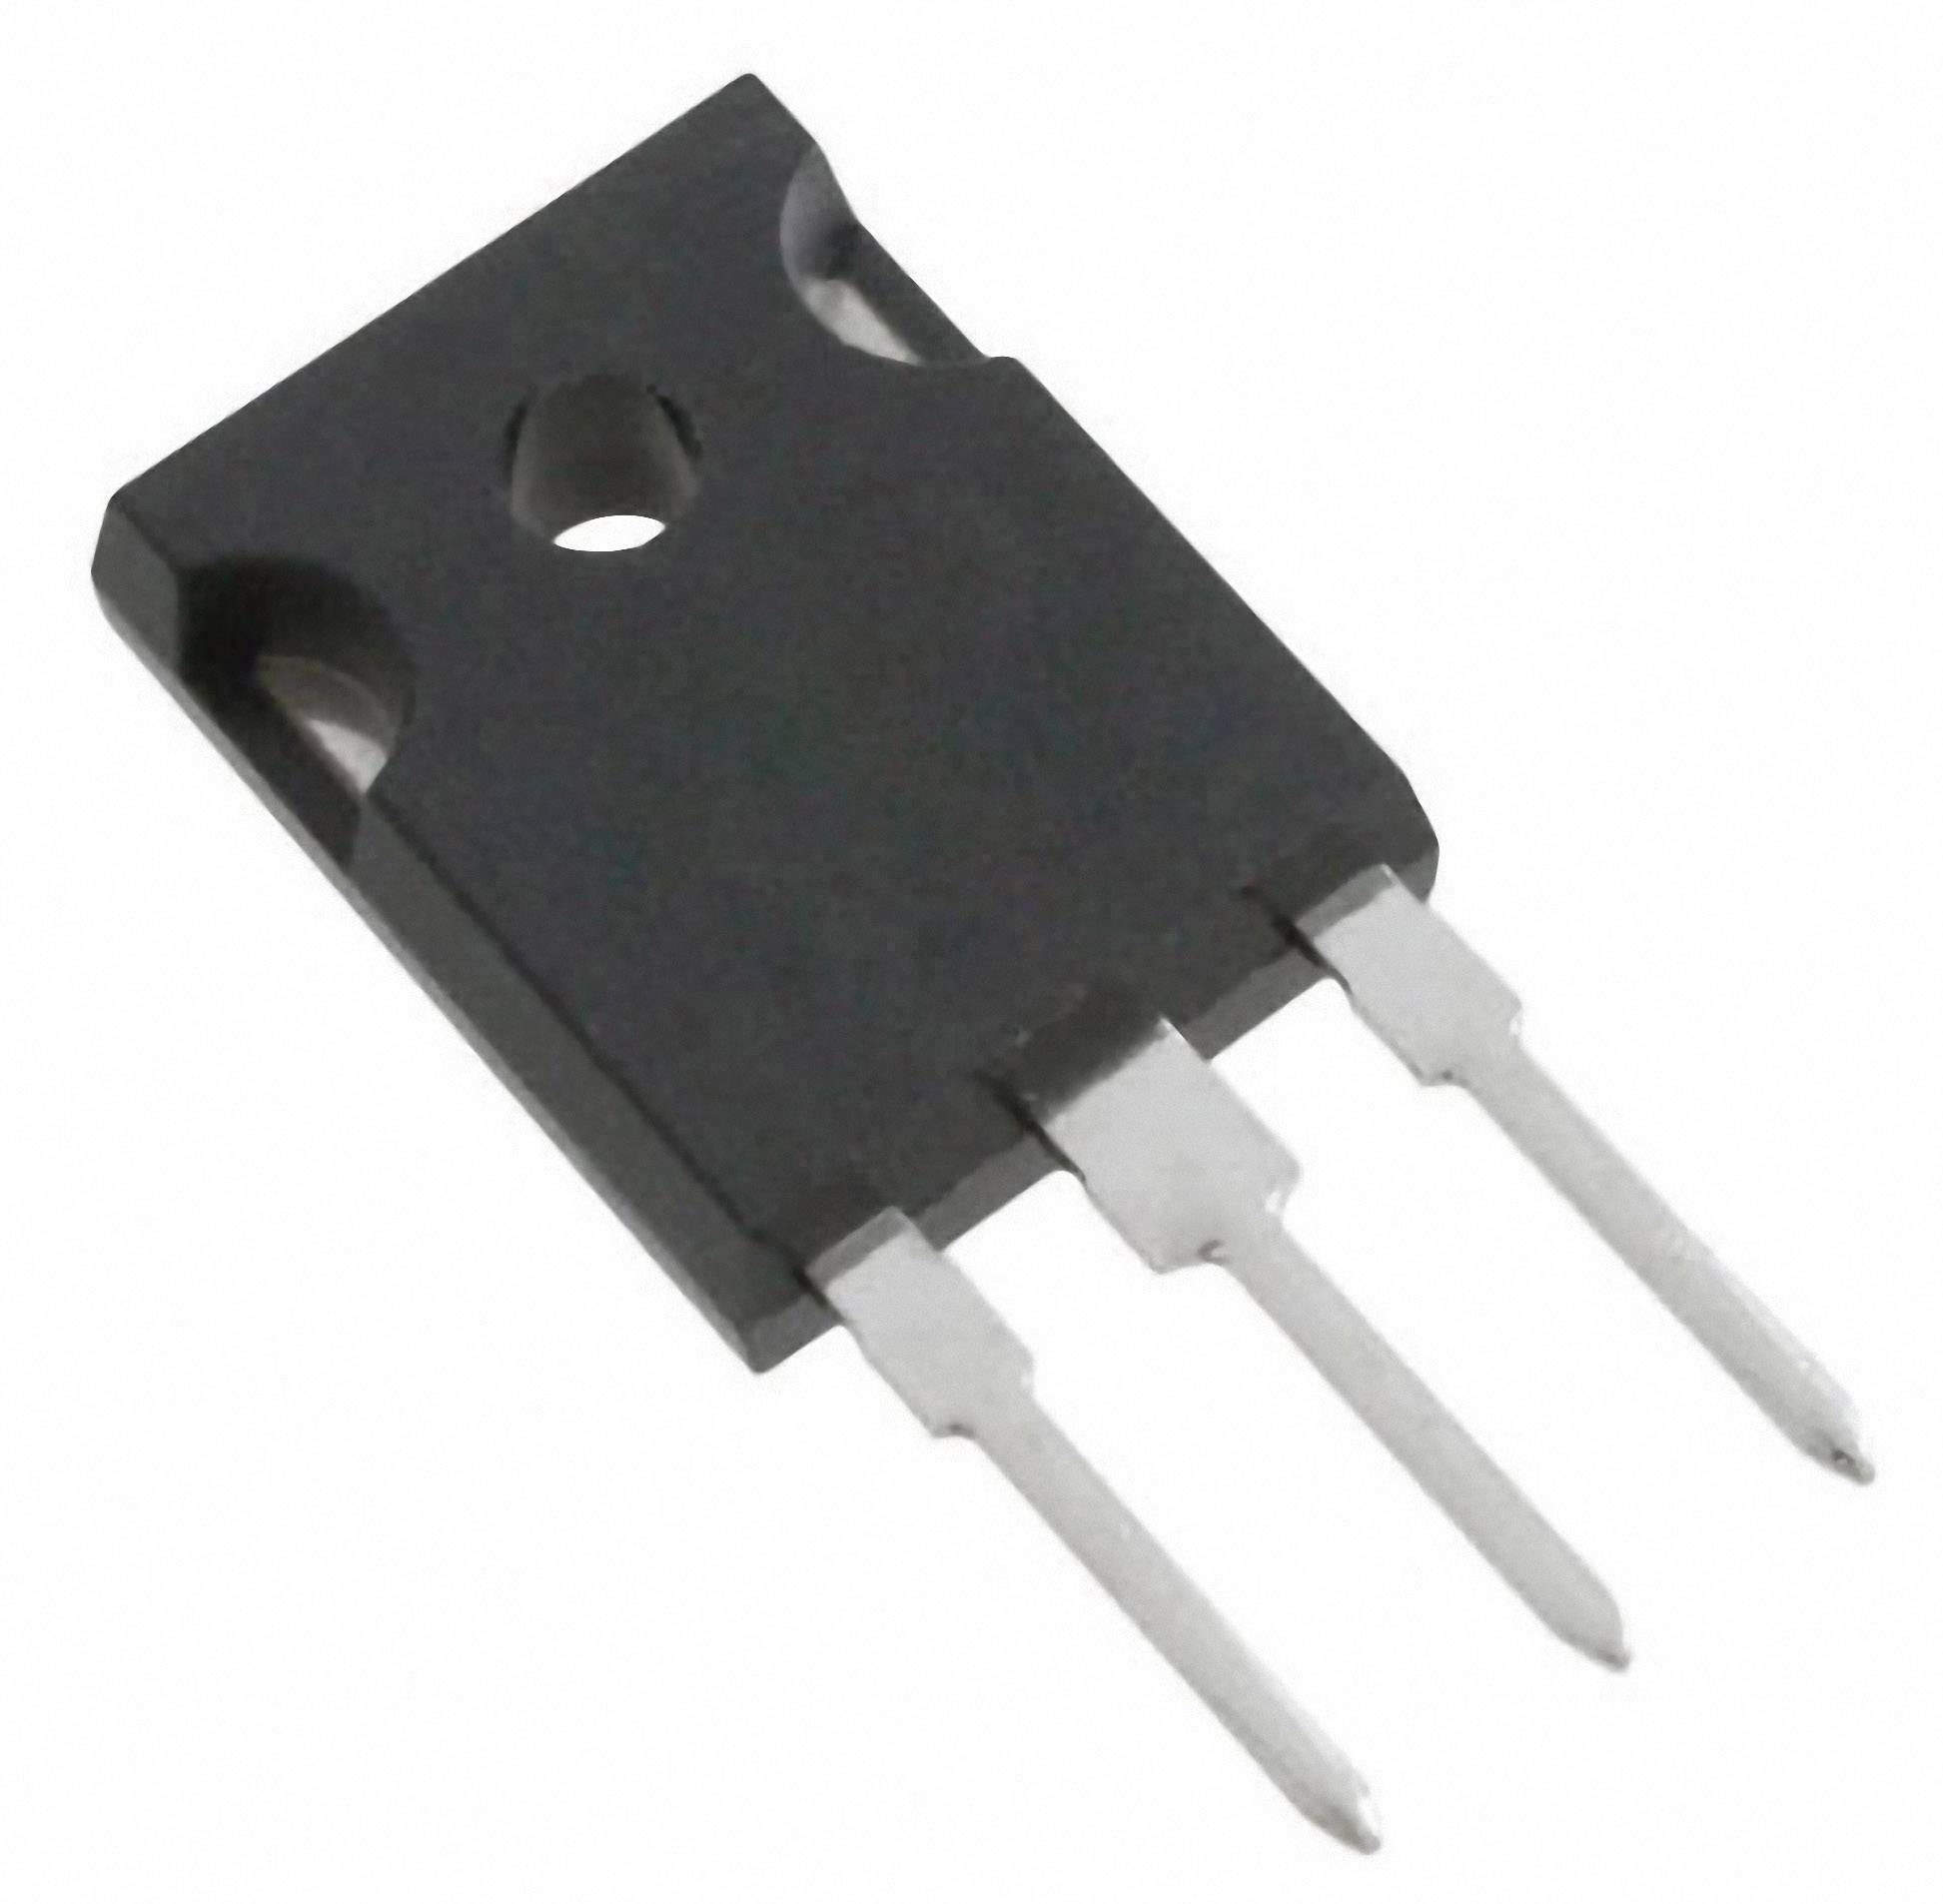 MOSFET Fairchild Semiconductor N kanál N-CH 100V HUF75639G3 TO-247-3 FSC